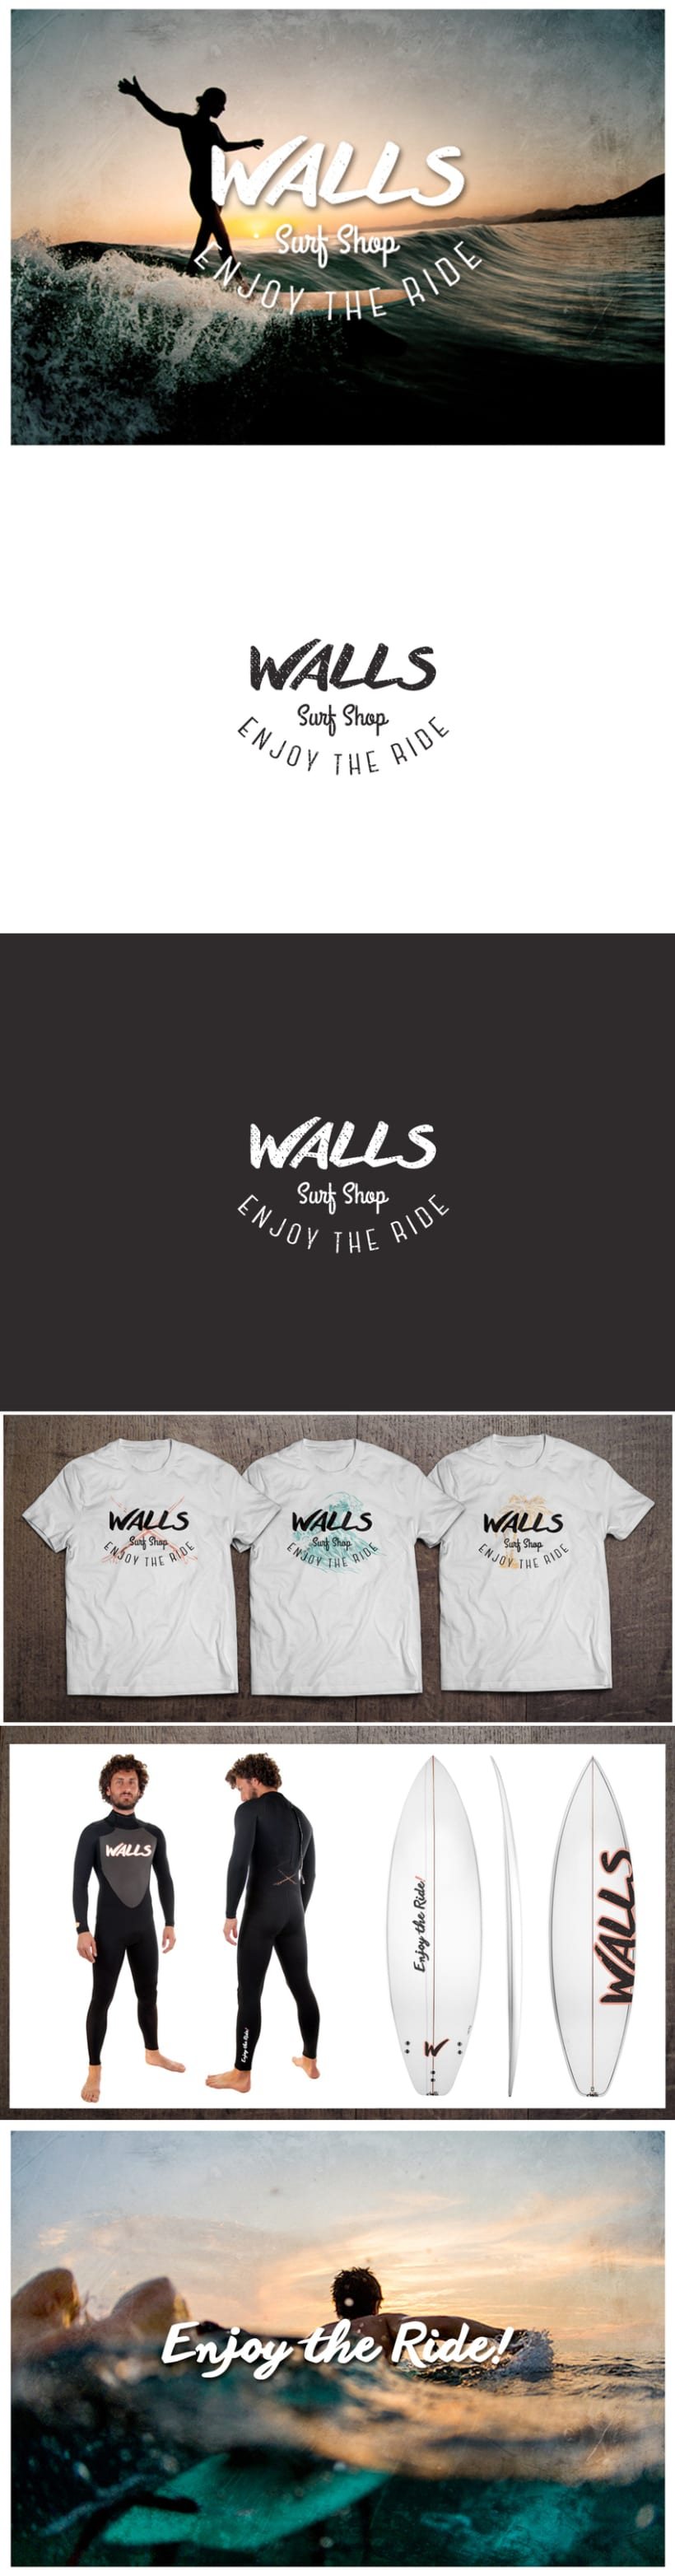 Walls Surf Shop -1